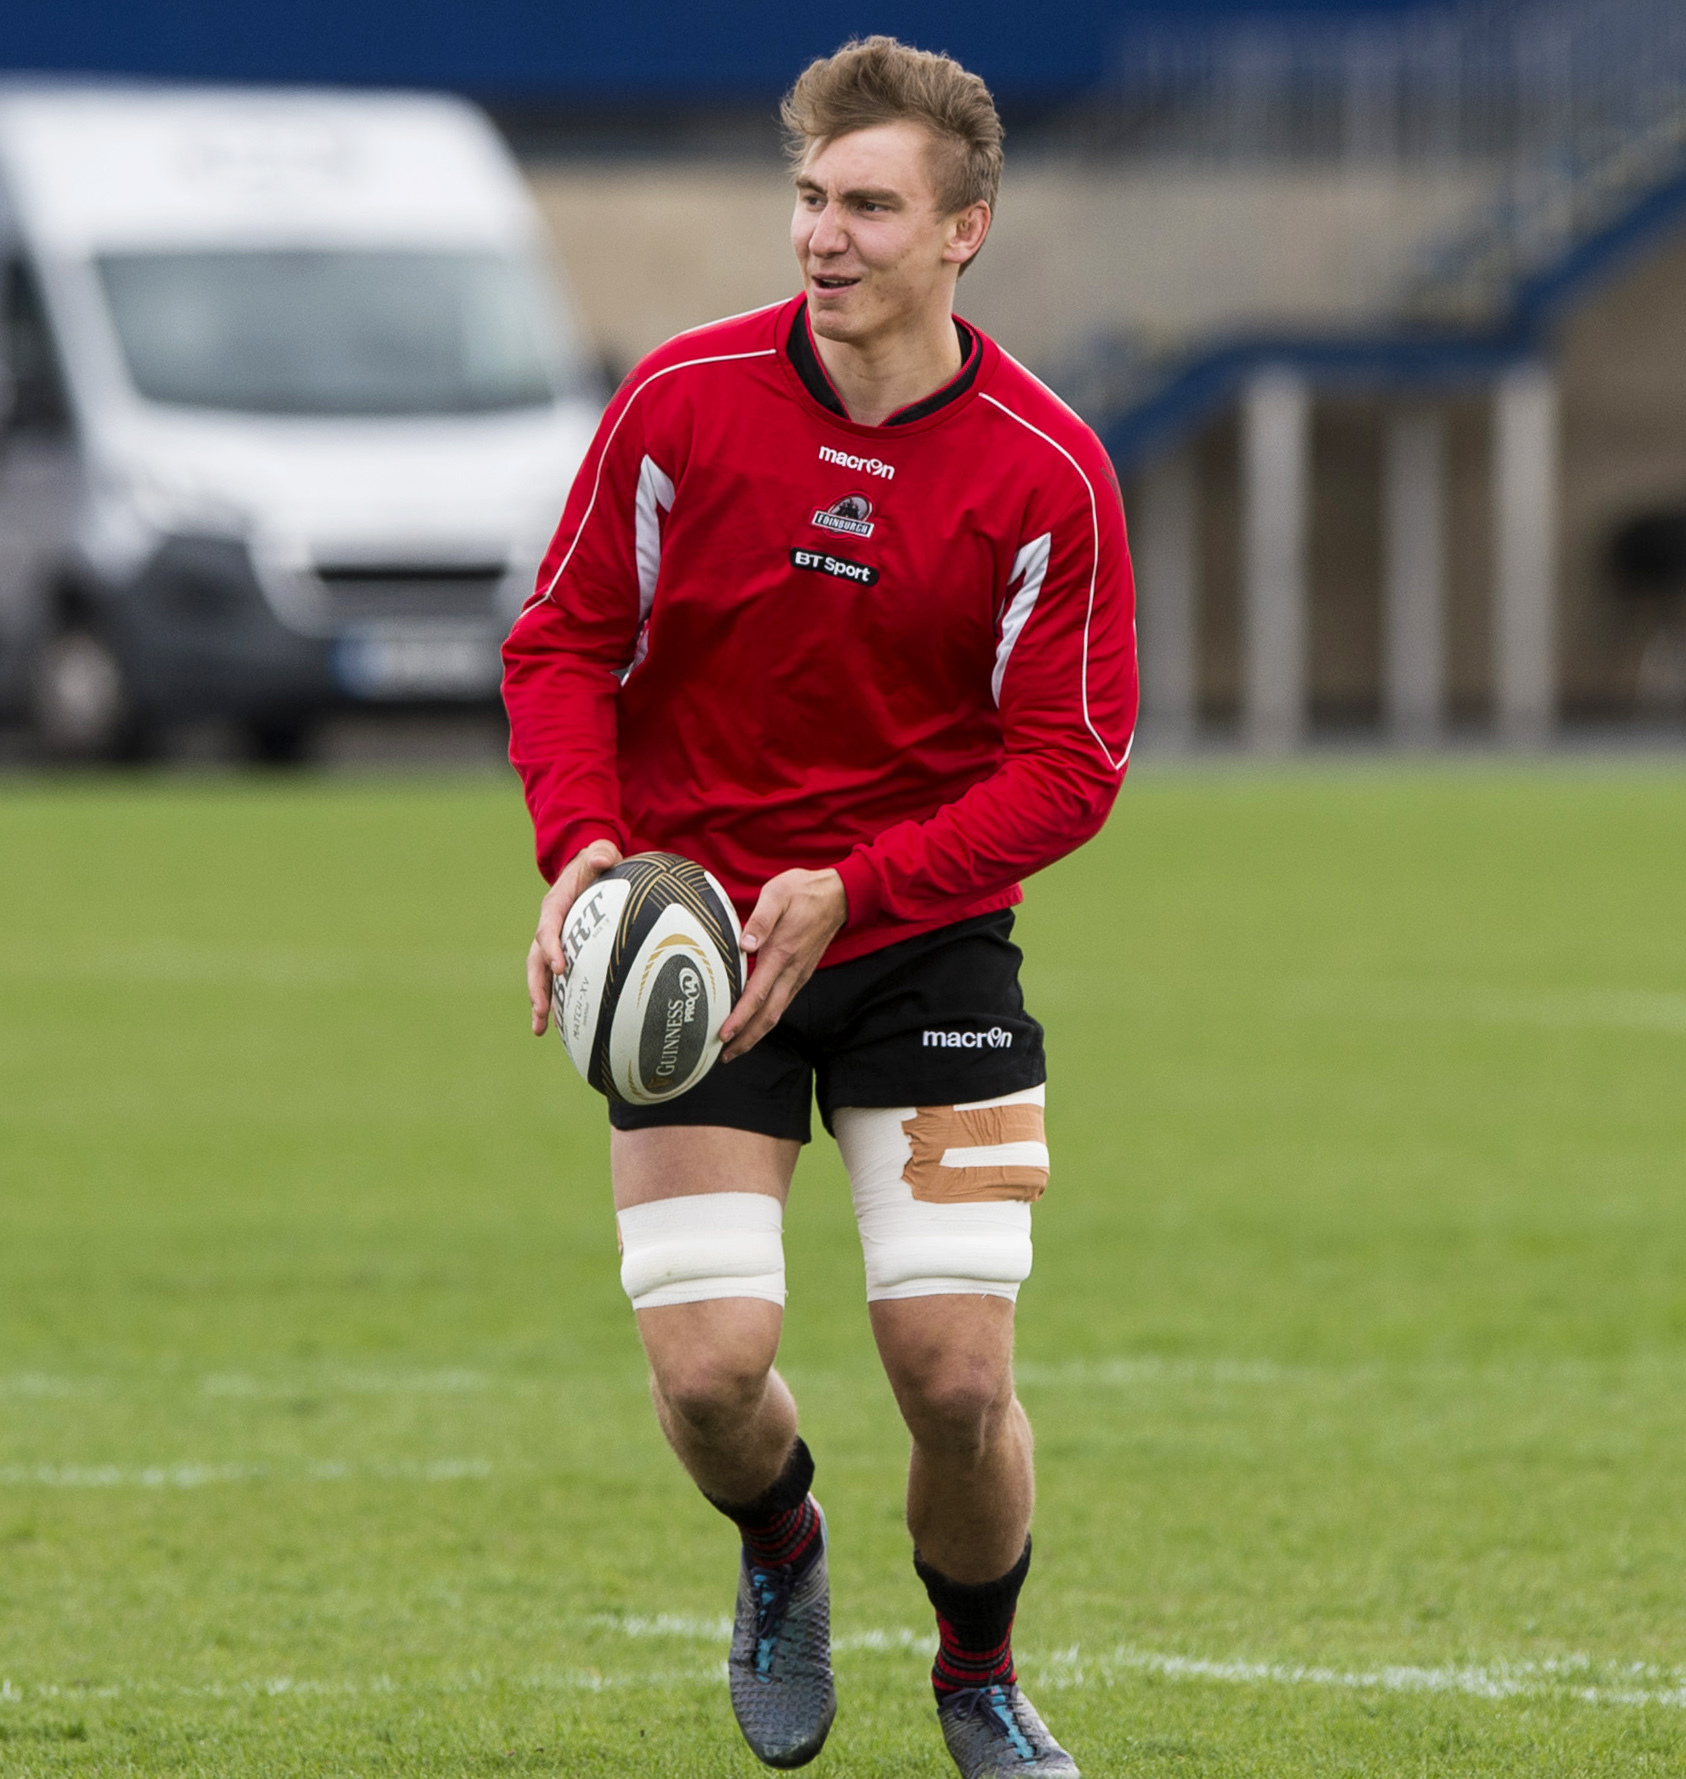 24/04/18 . EDINBURGH RUGBY TRAINING. BT MURRAYFIELD STADIUM - EDINBURGH. Edinburgh's Jamie Ritchie in training.